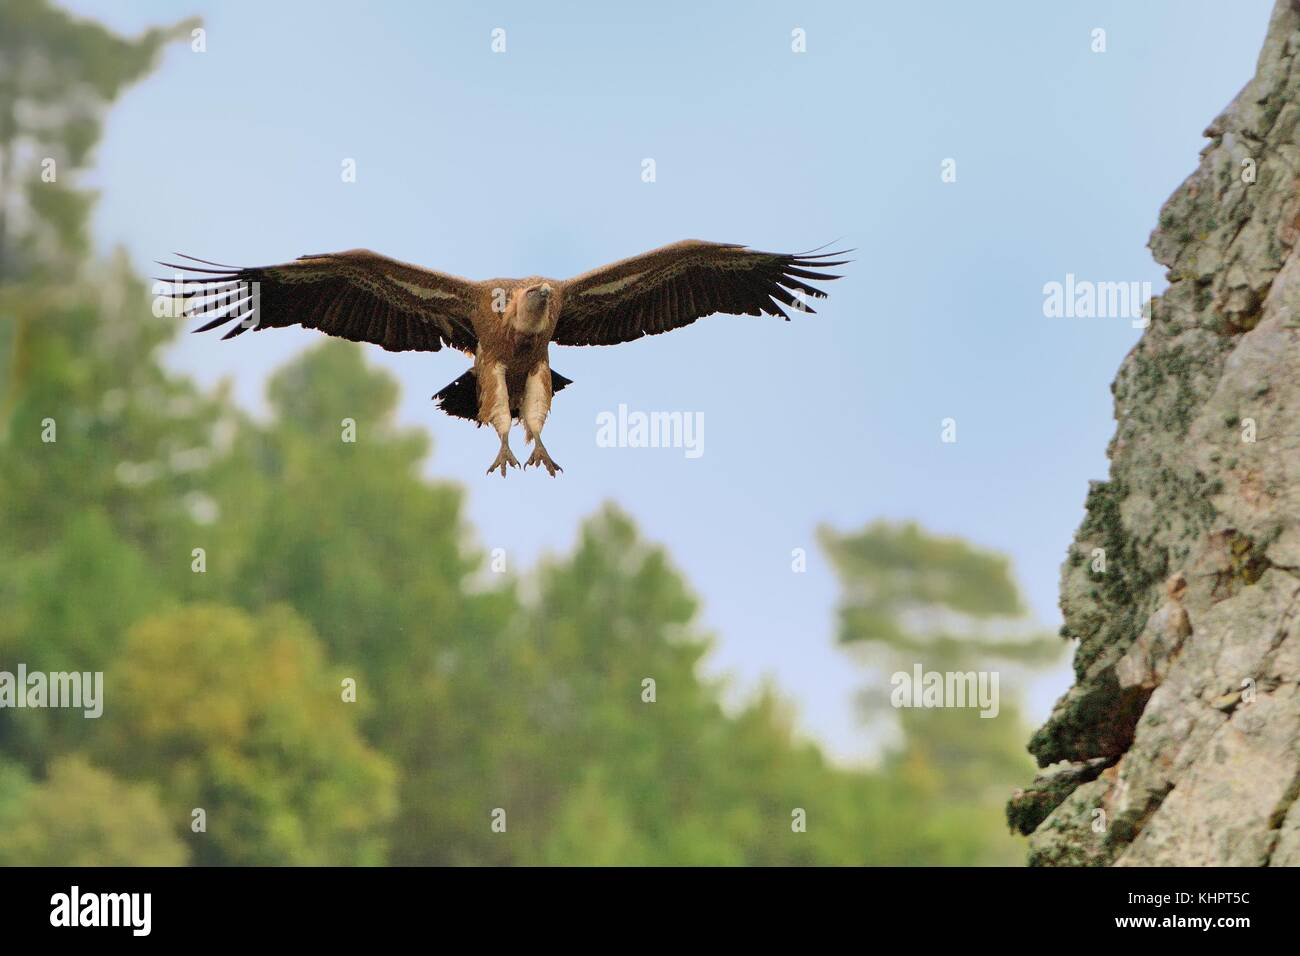 Eurasian Griffon (Gyps fulvus) captured in flight. - Stock Image